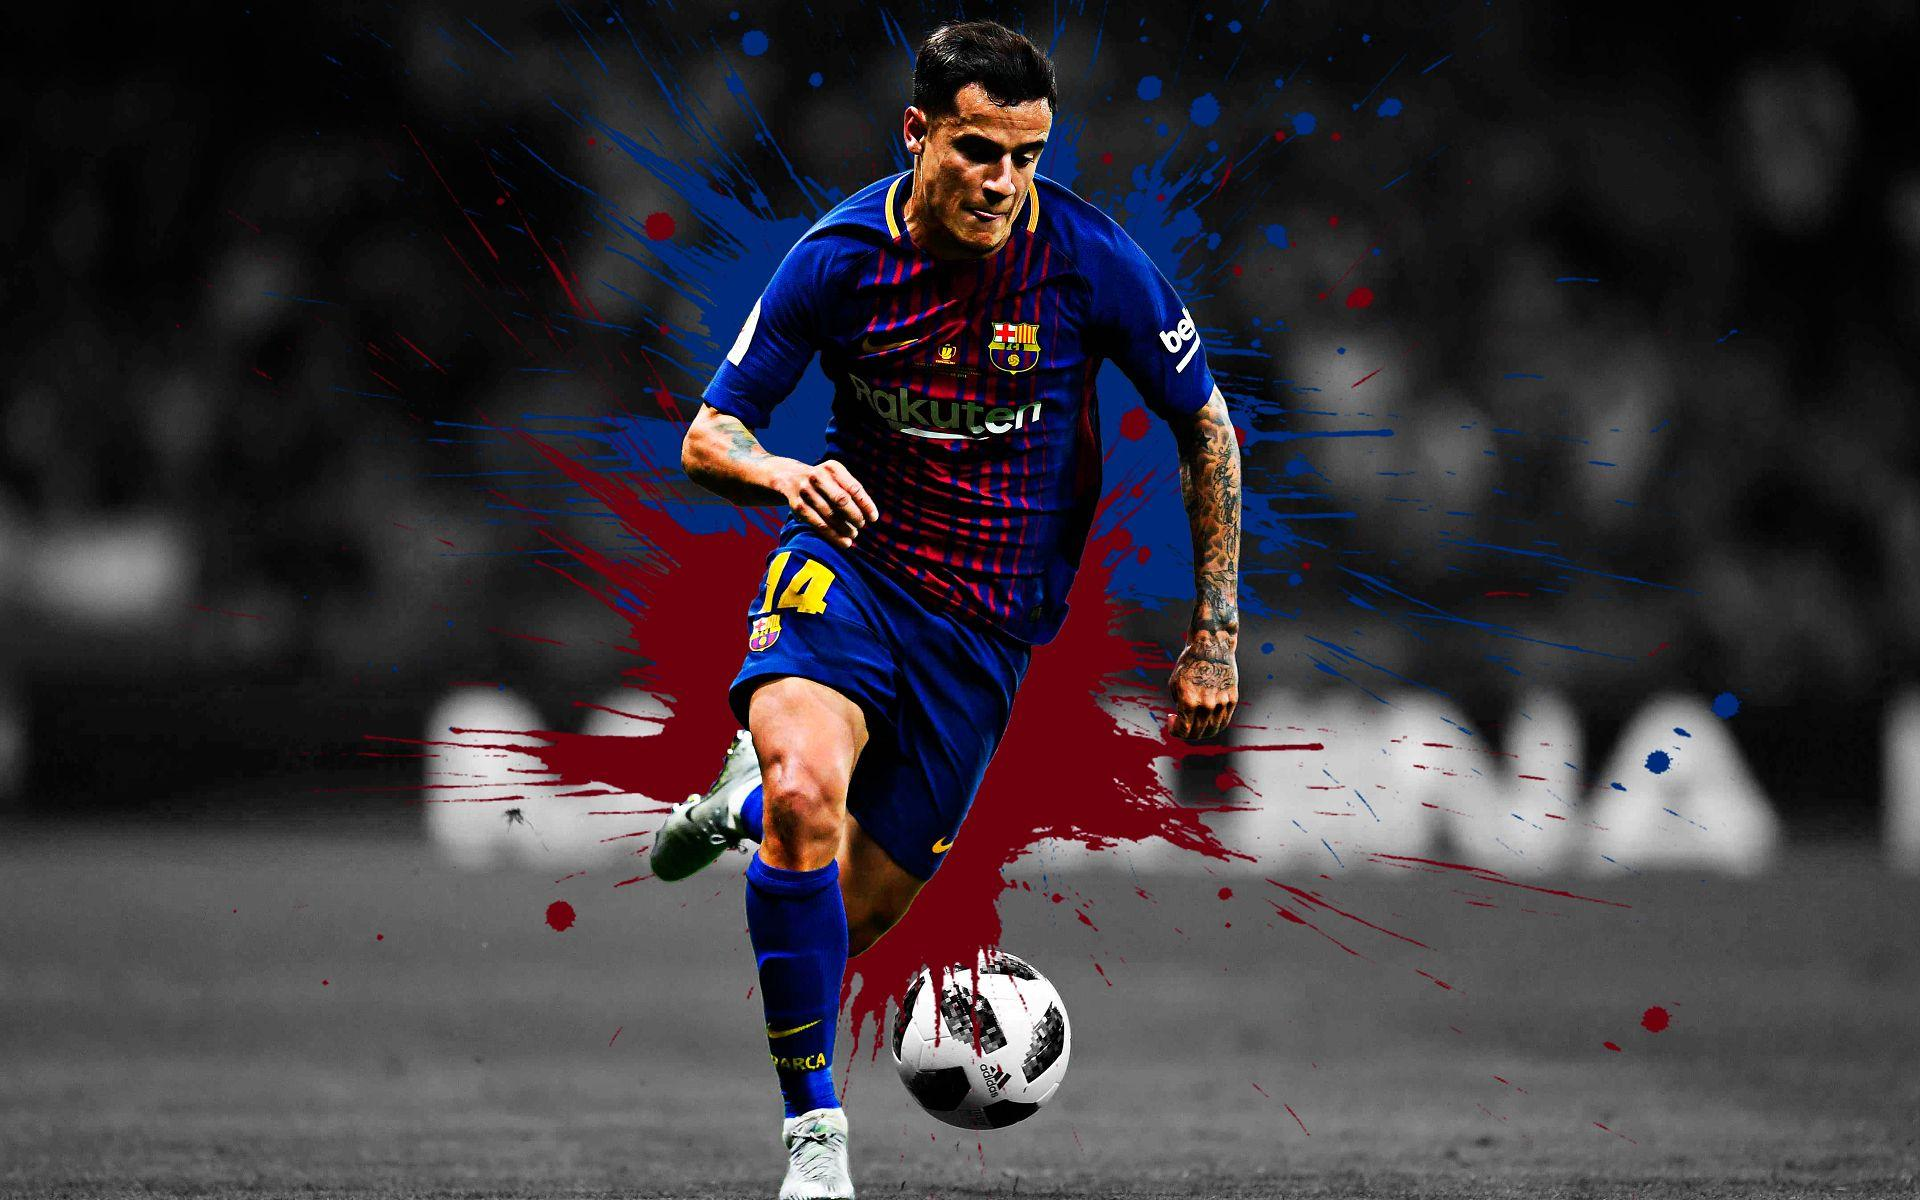 Philippe coutinho barcelona wallpapers wallpaper cave - Coutinho wallpaper hd ...